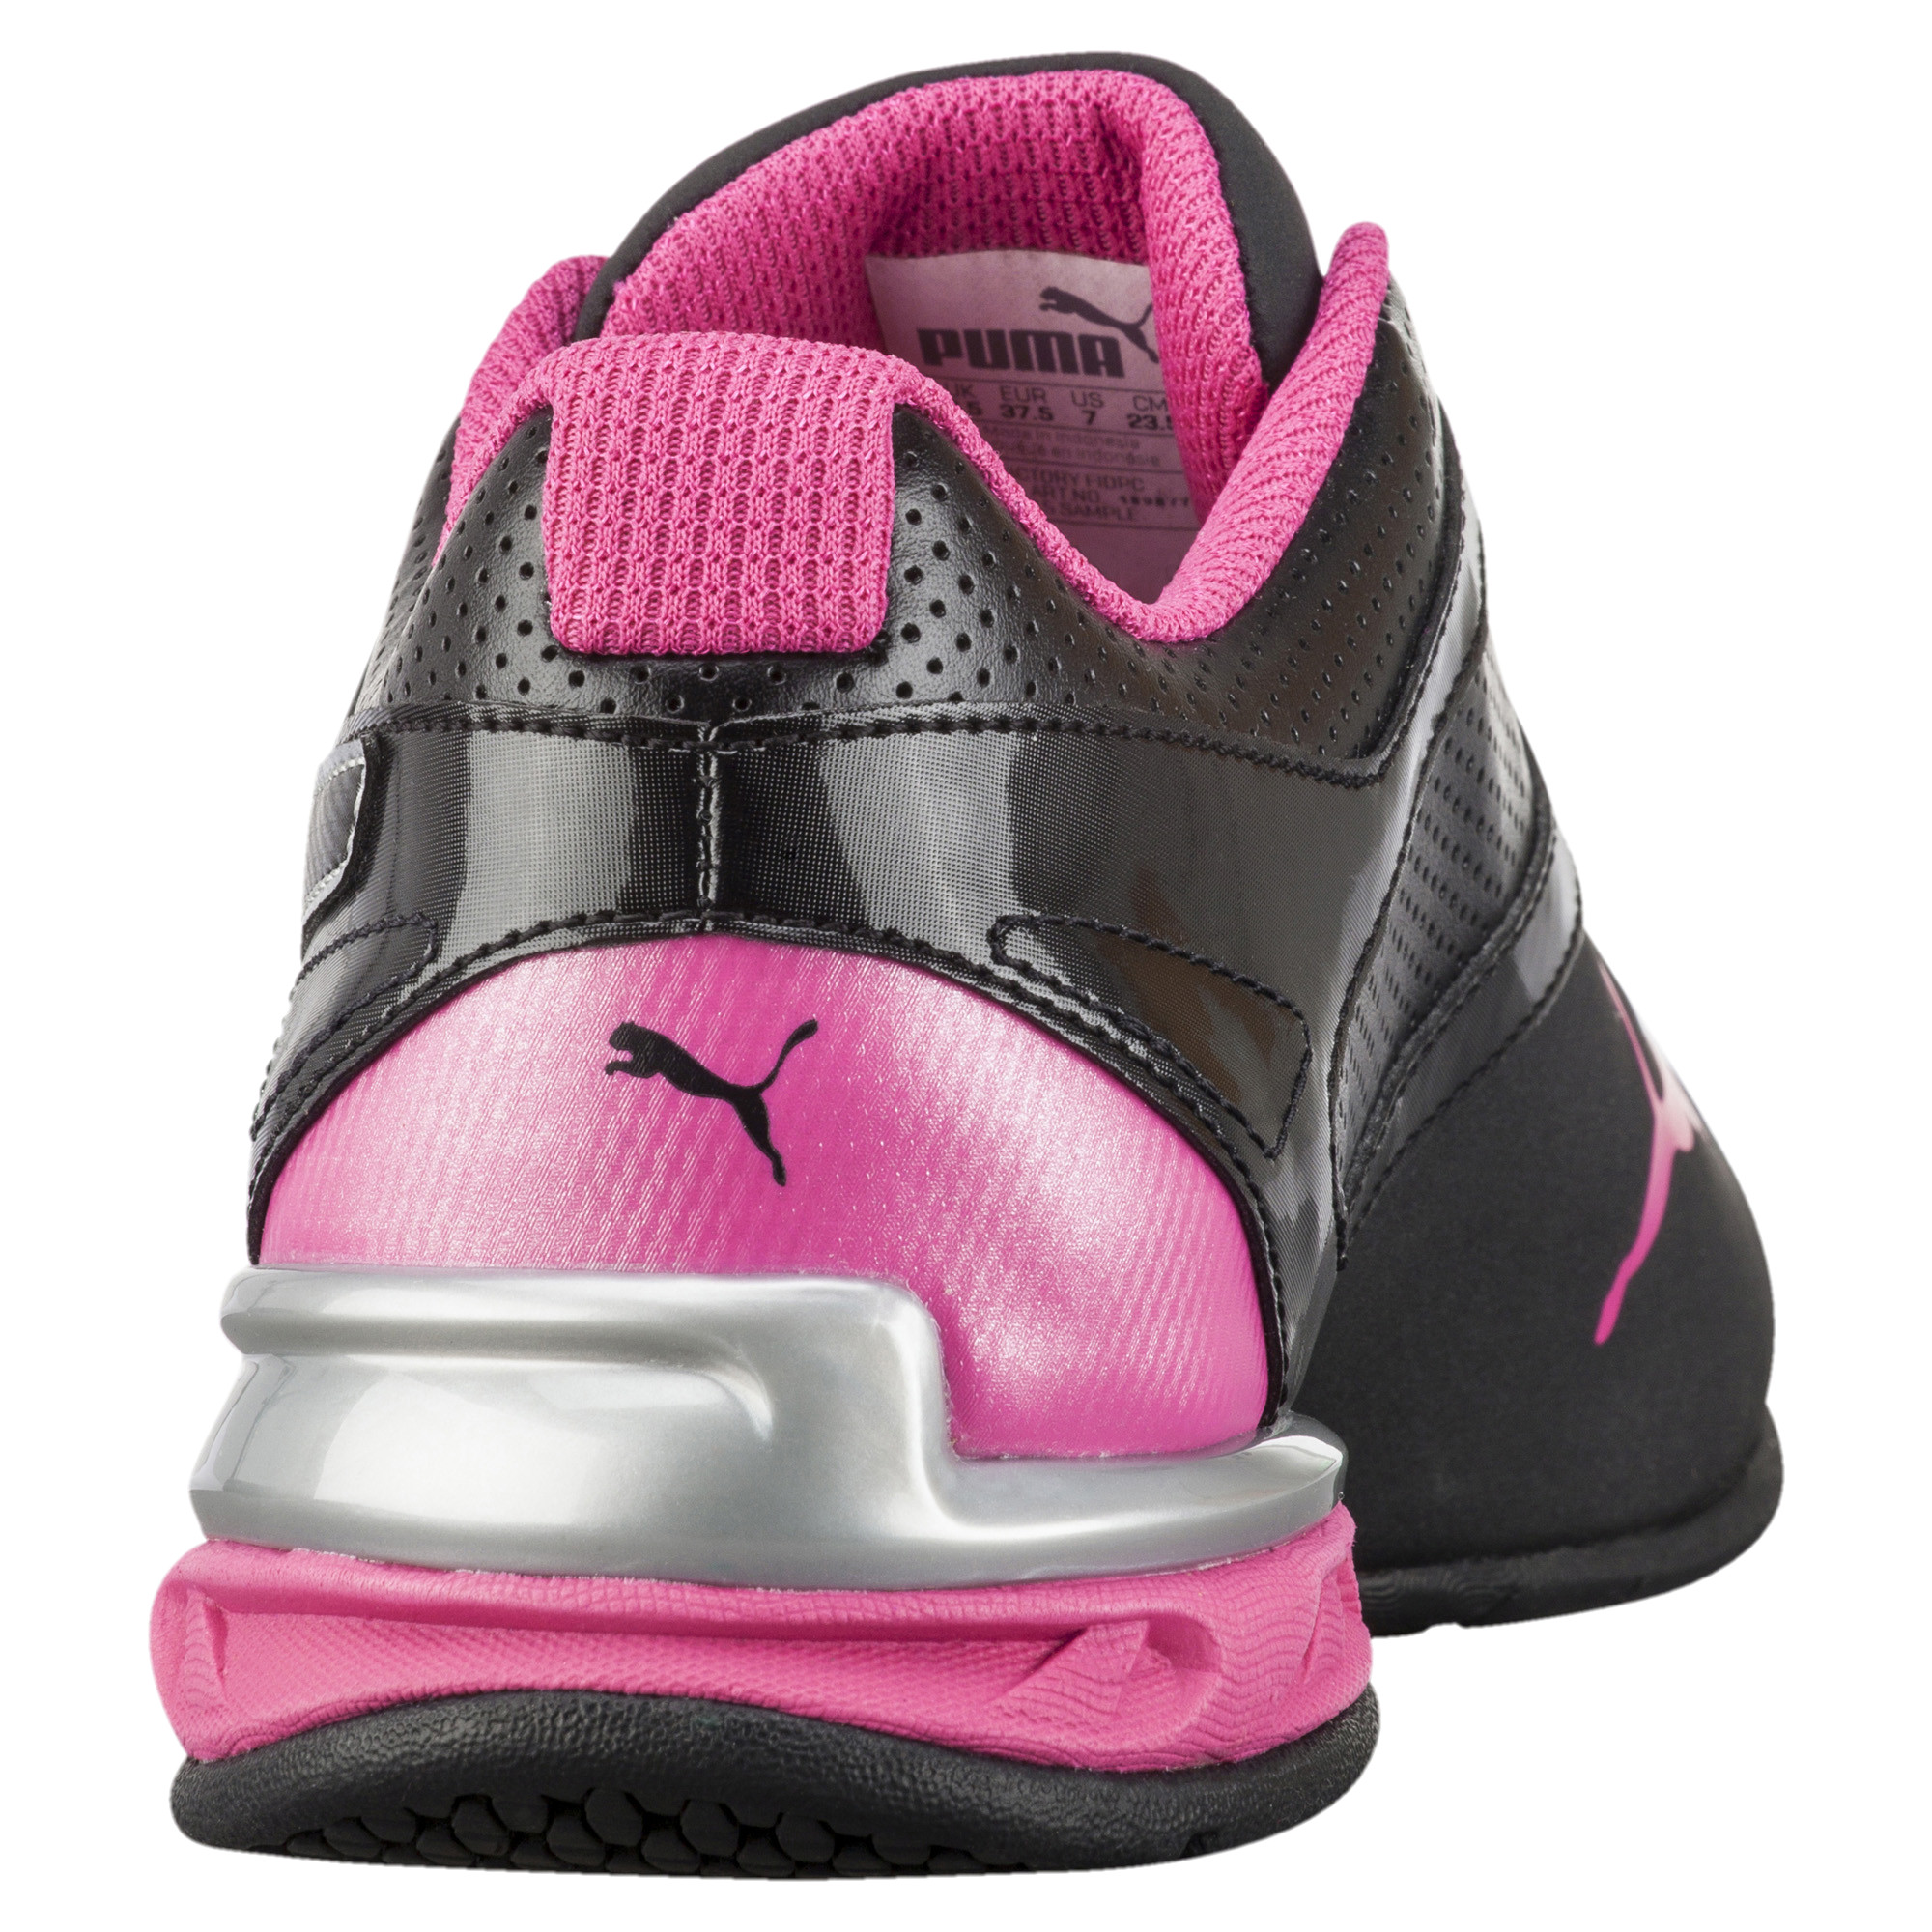 PUMA-Tazon-6-FM-Women-039-s-Sneakers-Women-Shoe-Running thumbnail 3